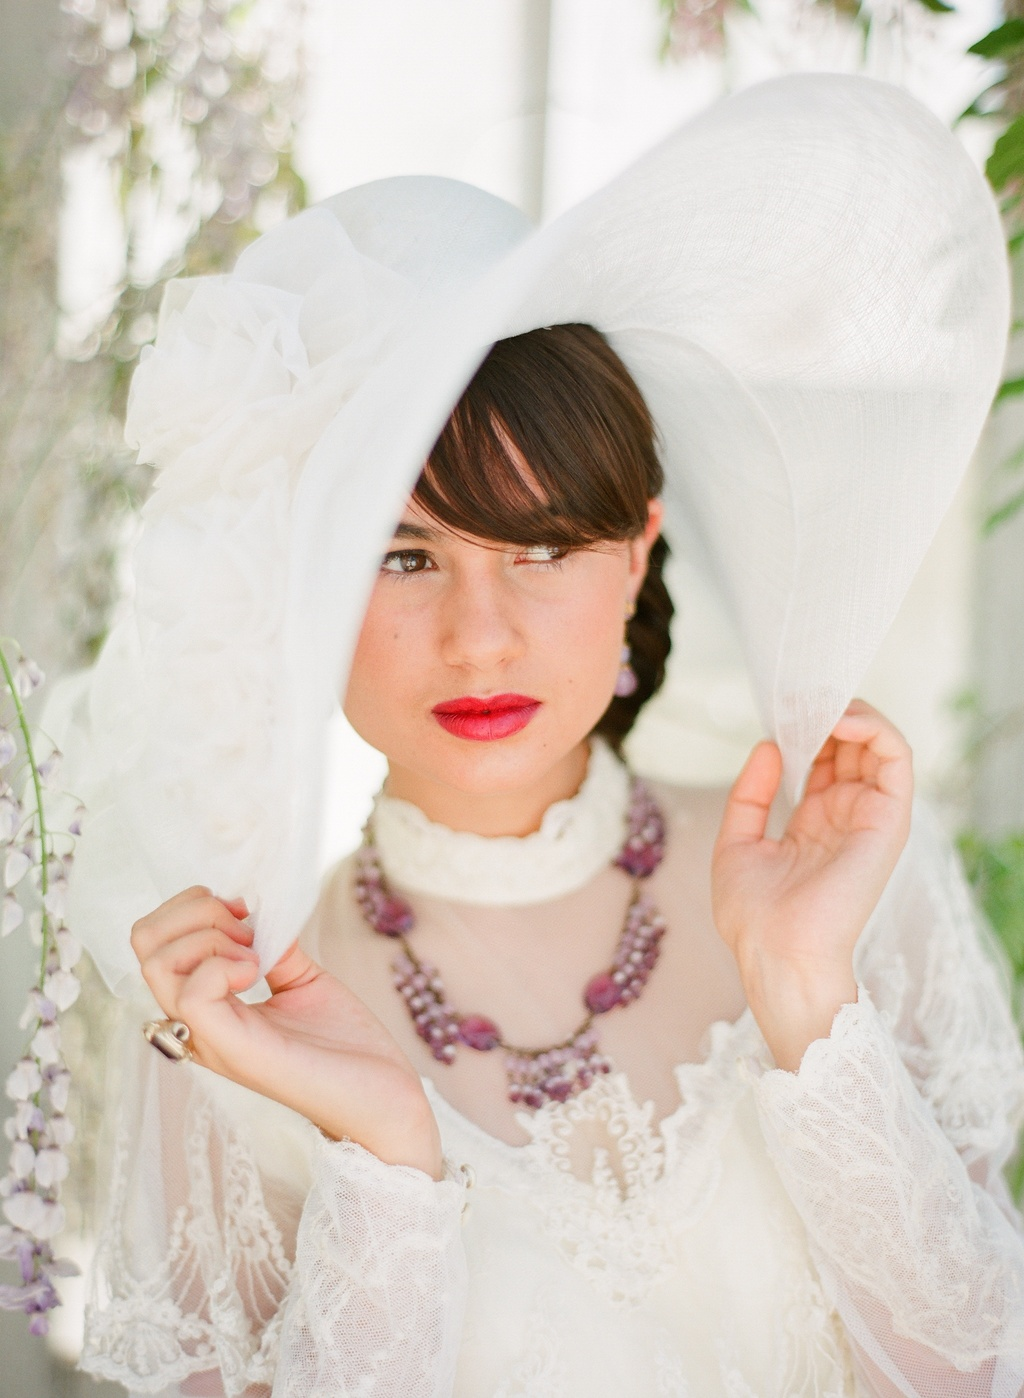 Bright-lips-for-brides-vintage-outdoor-wedding-shoot-1.full